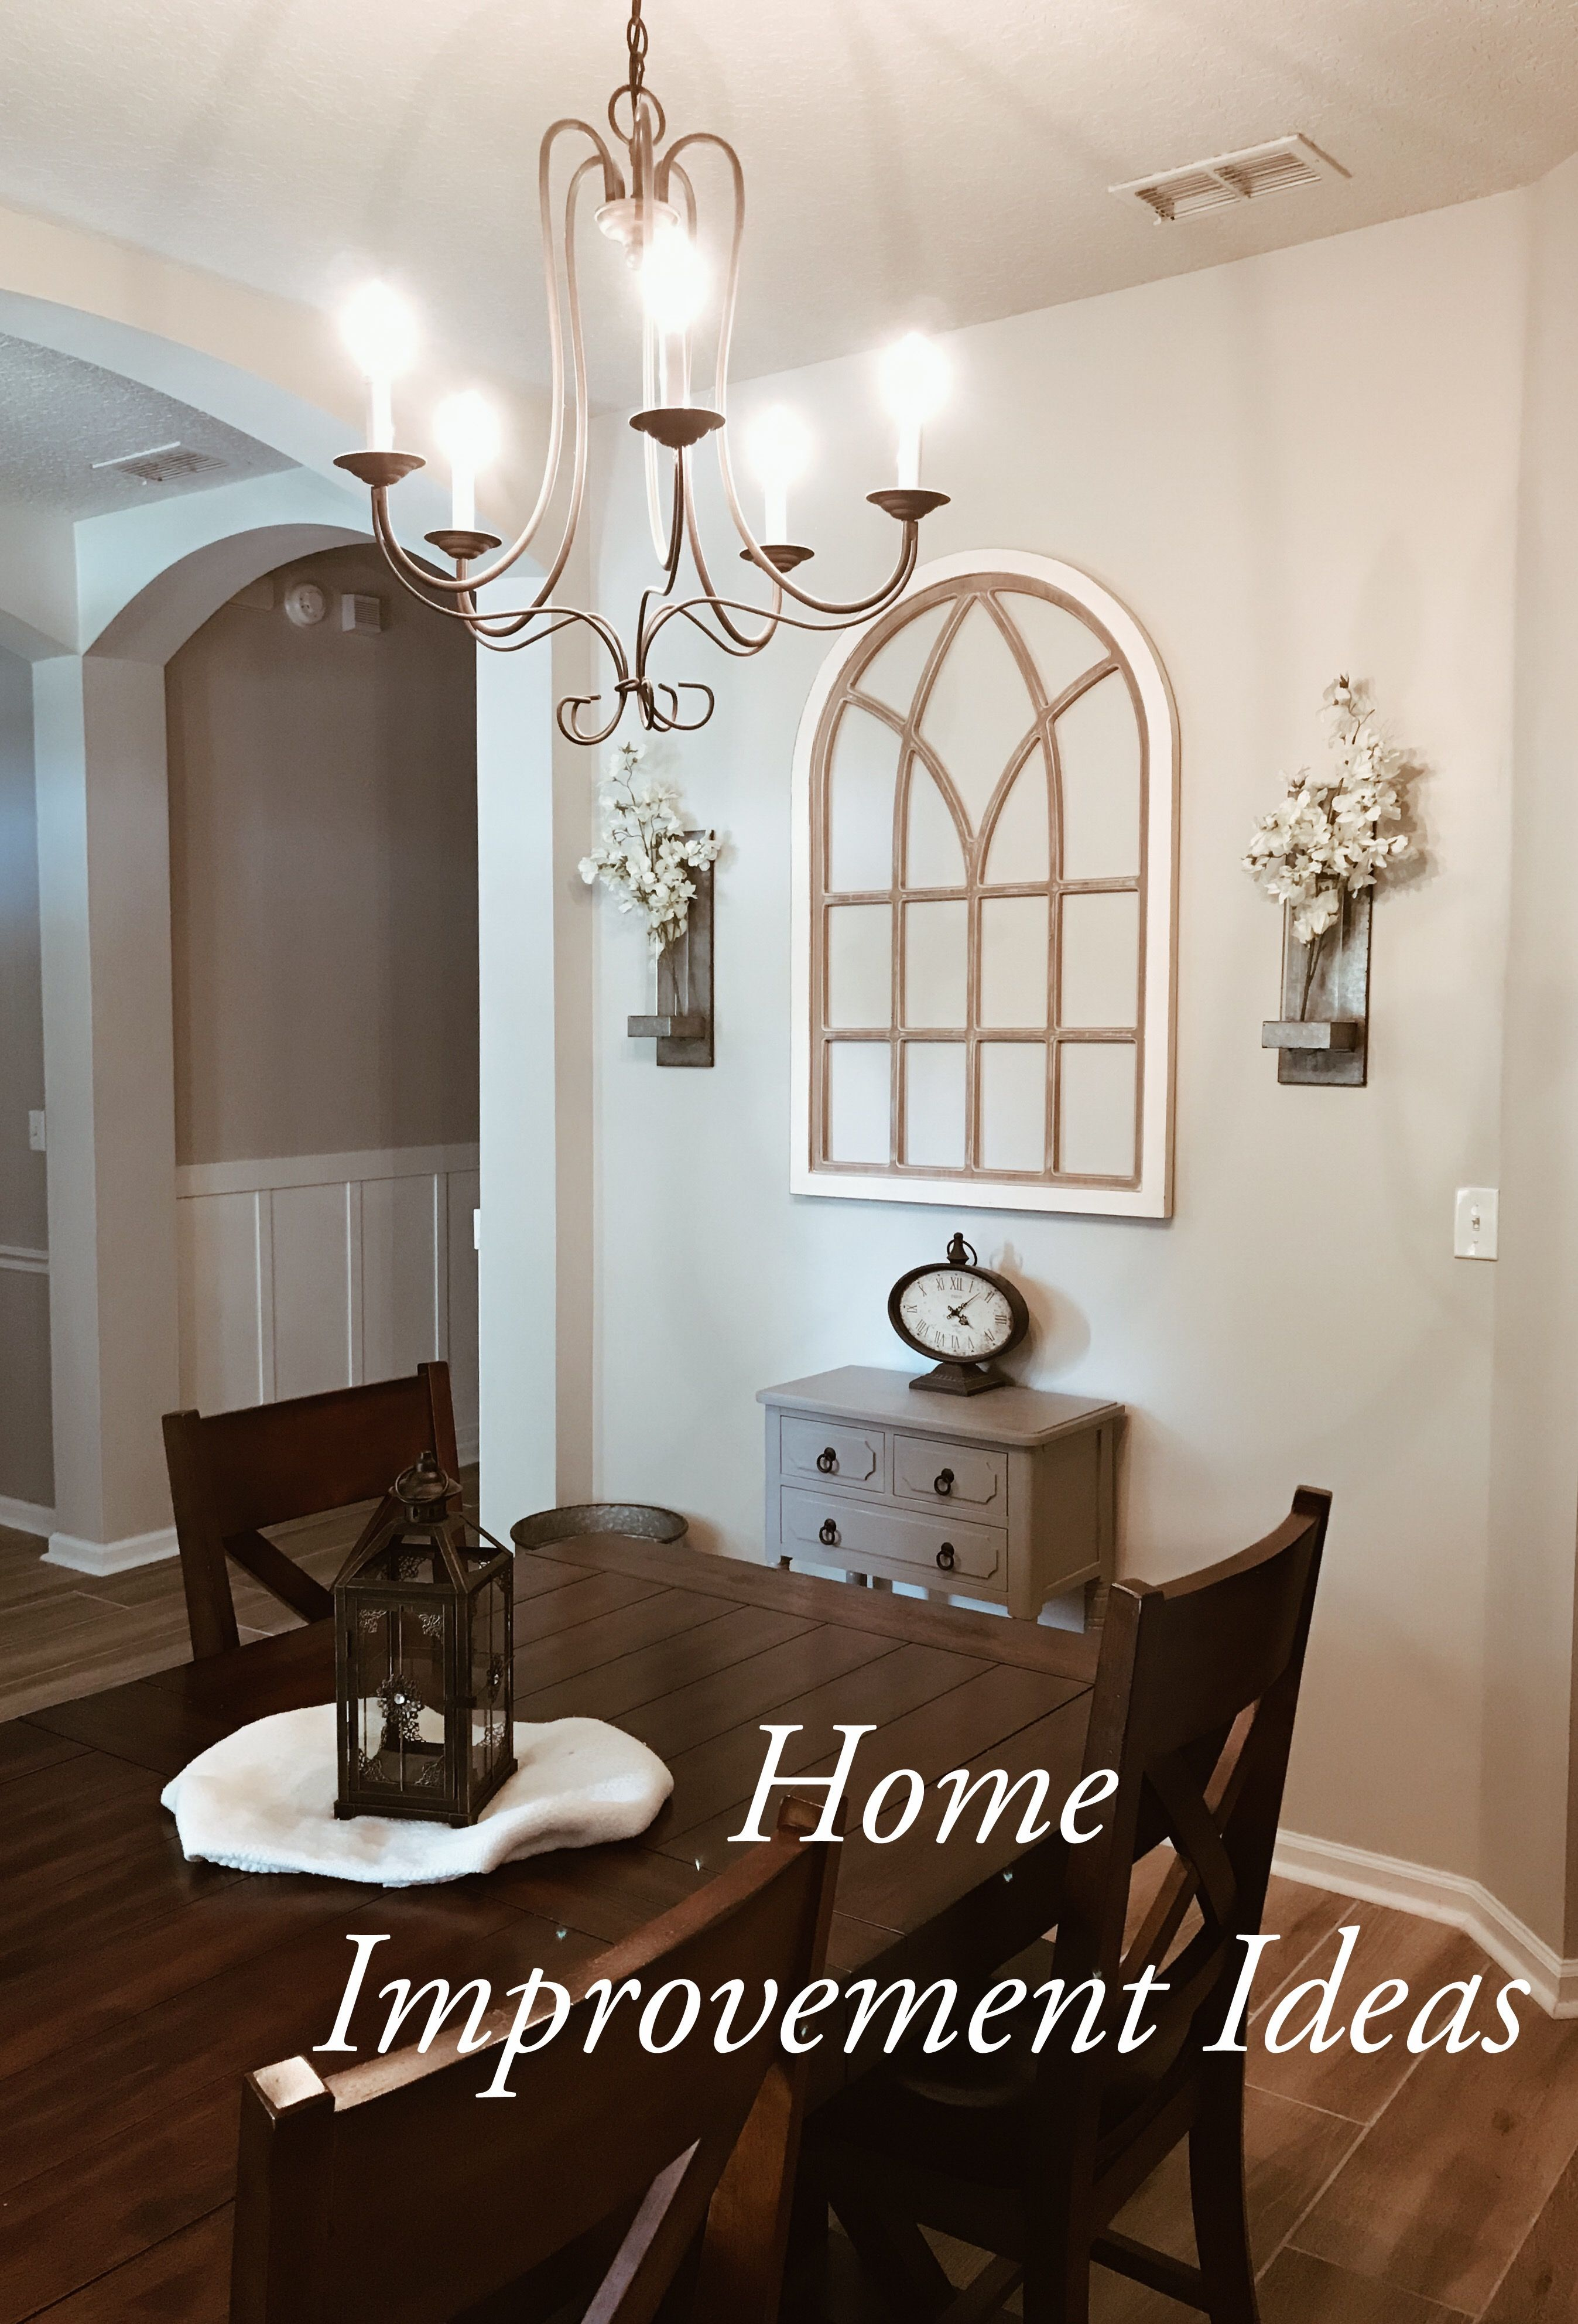 Ideas On Home Improvement Projects And Remodeling New Wood Look Tile Flooring Idea For Your House Wall Decor Paint